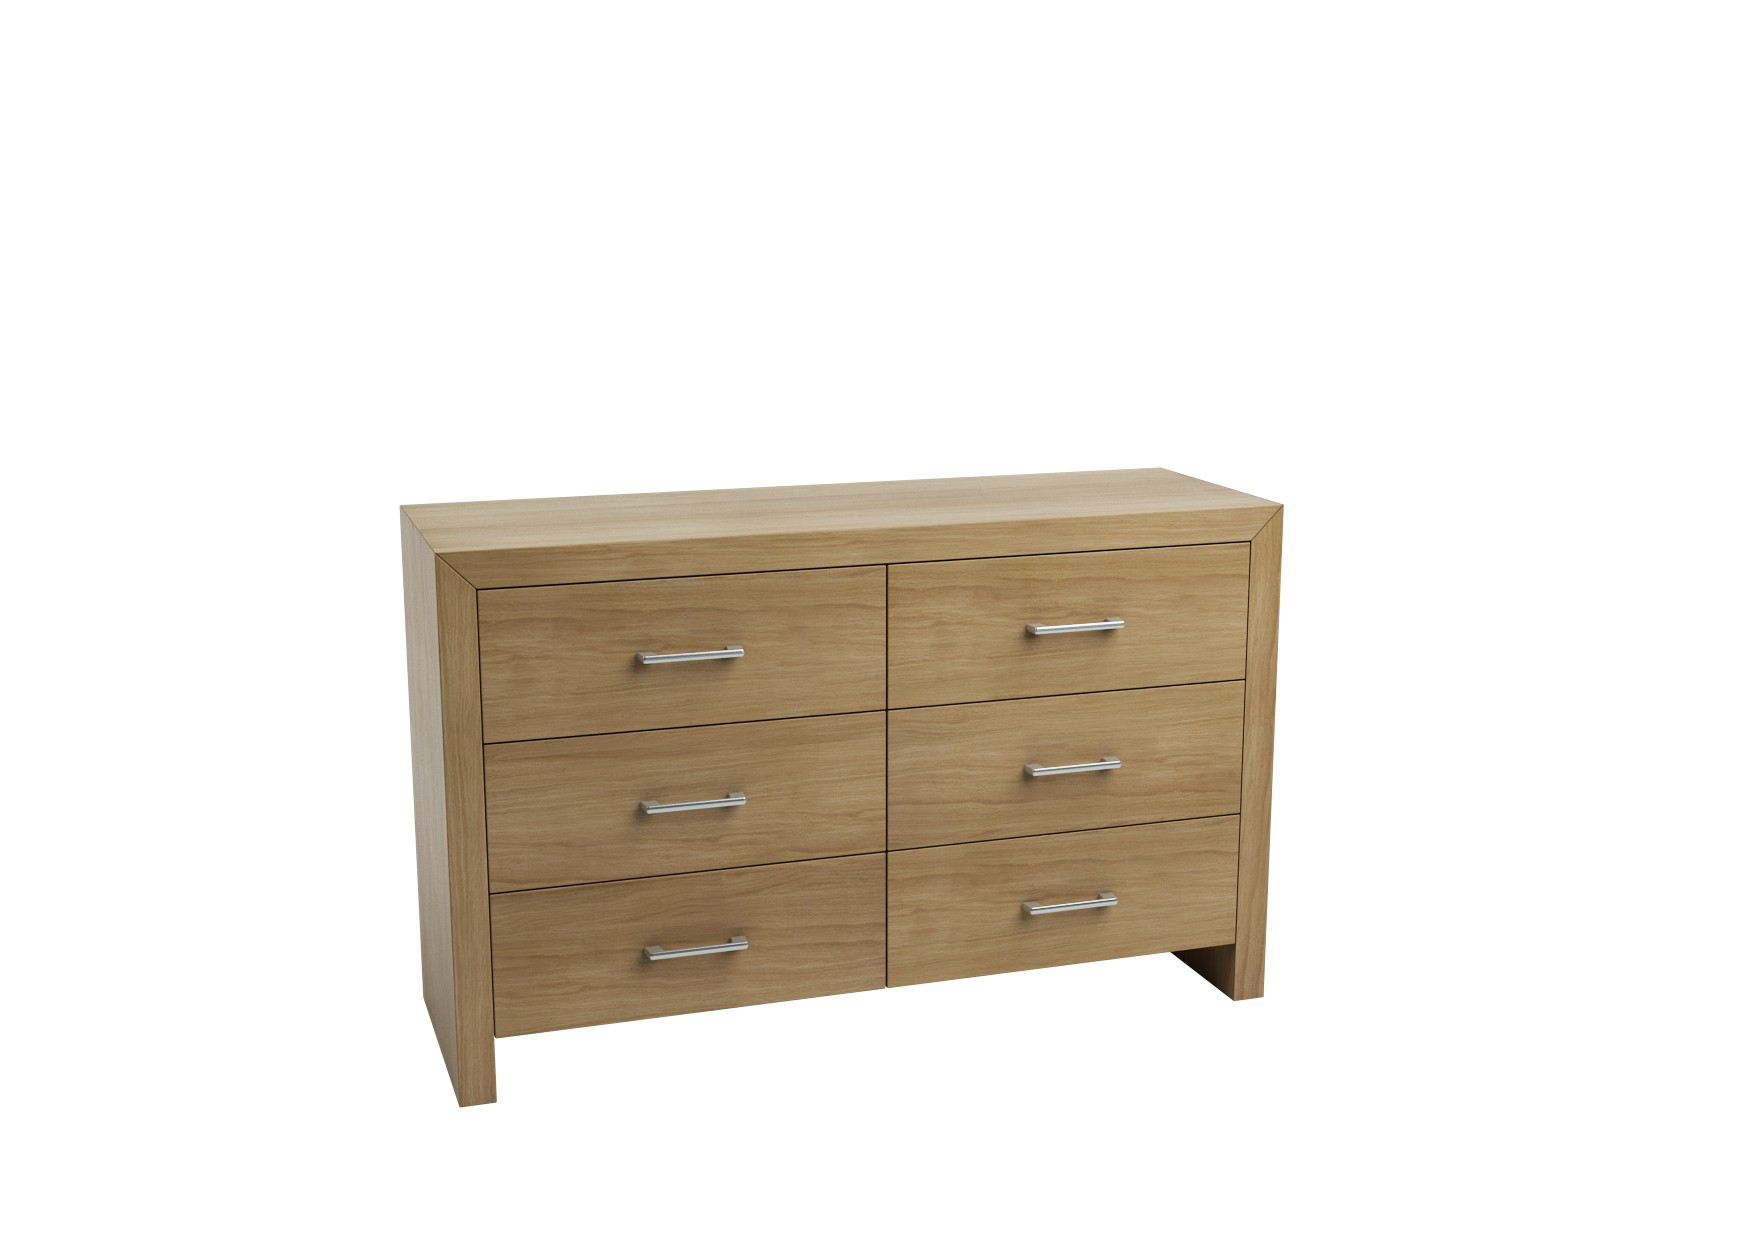 Viola Chest of Drawers